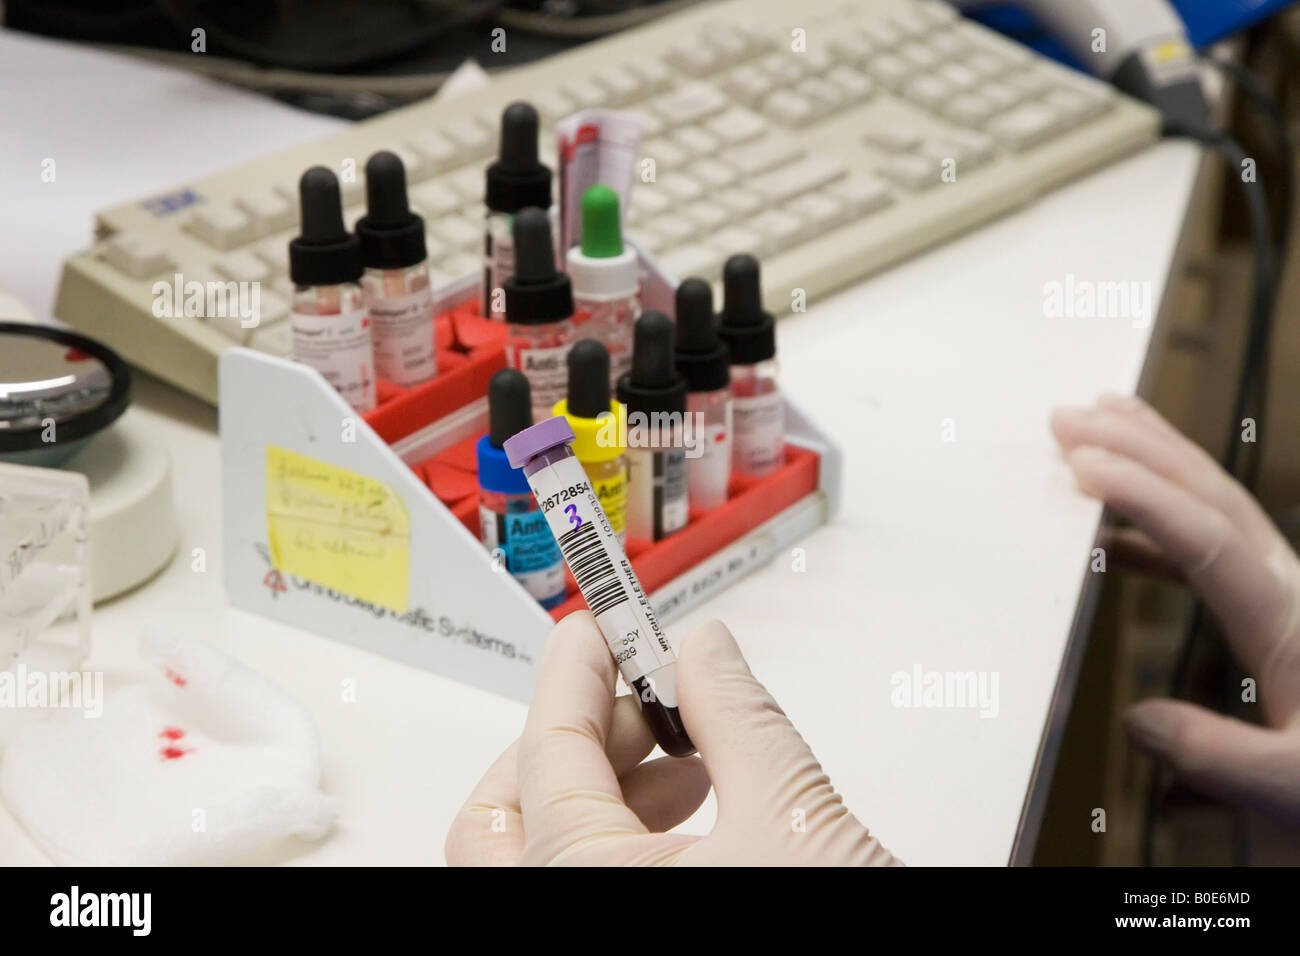 Detroit Michigan Technicians at the Detroit Medical Center perform blood tests ordered by doctors - Stock Image